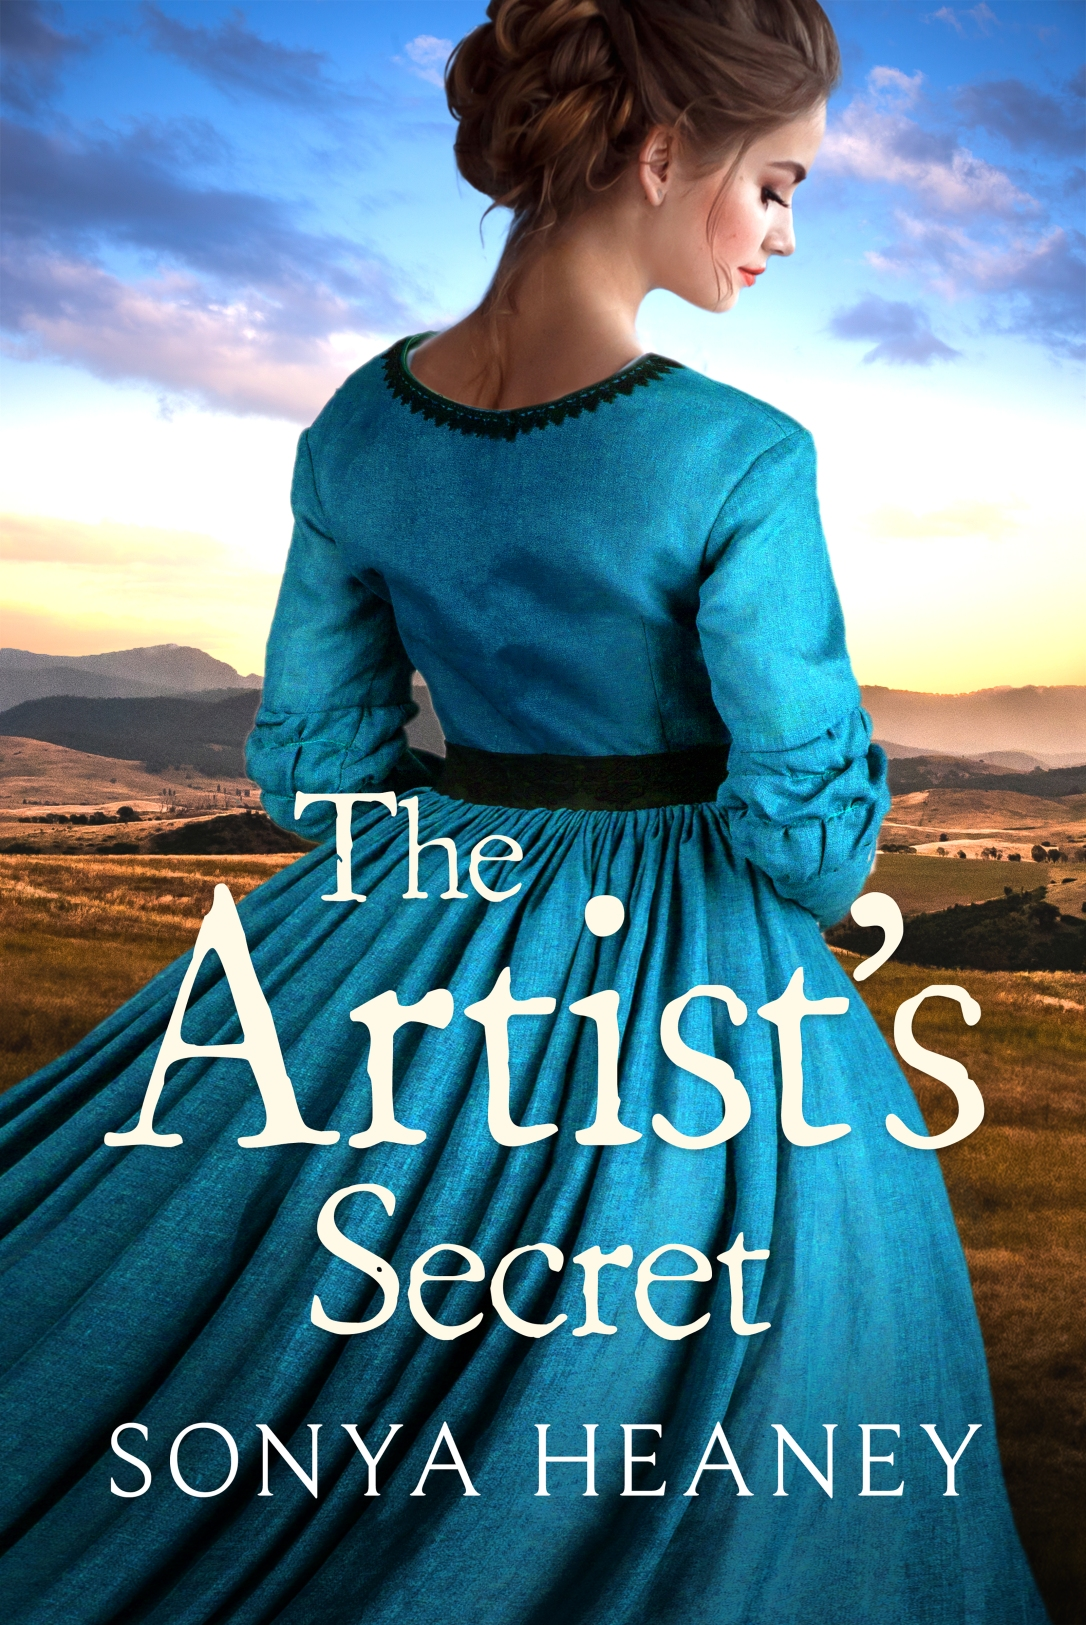 The Artist's Secret by Sonya Heaney